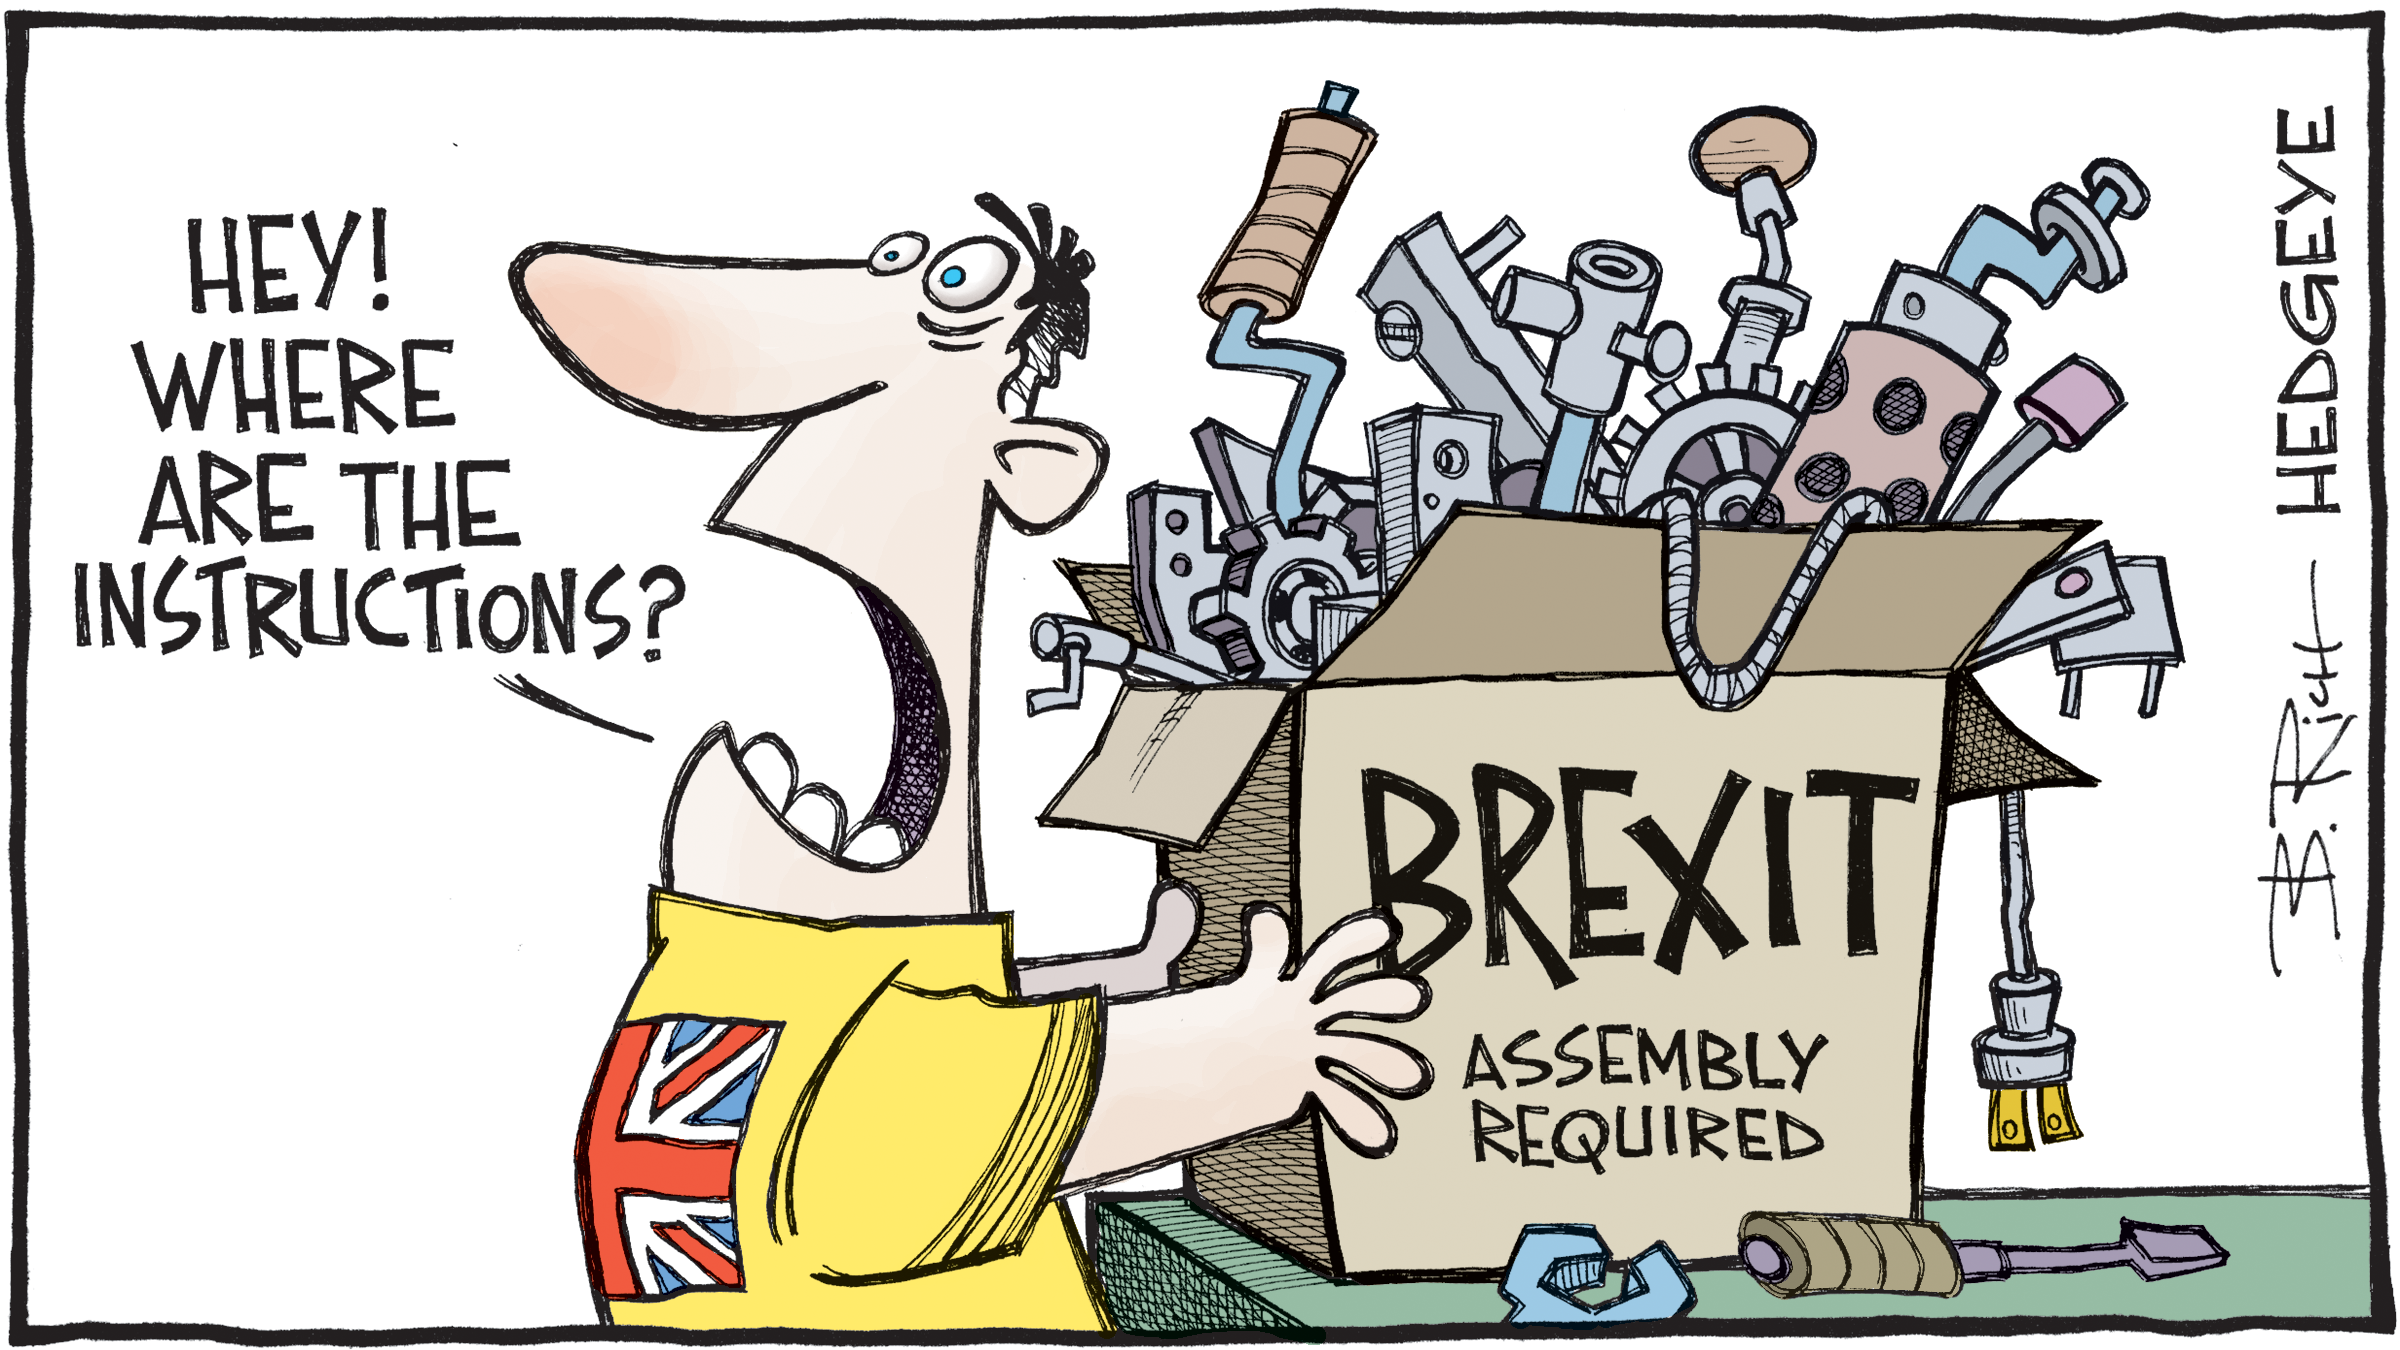 Brexit Instructions Cartoon